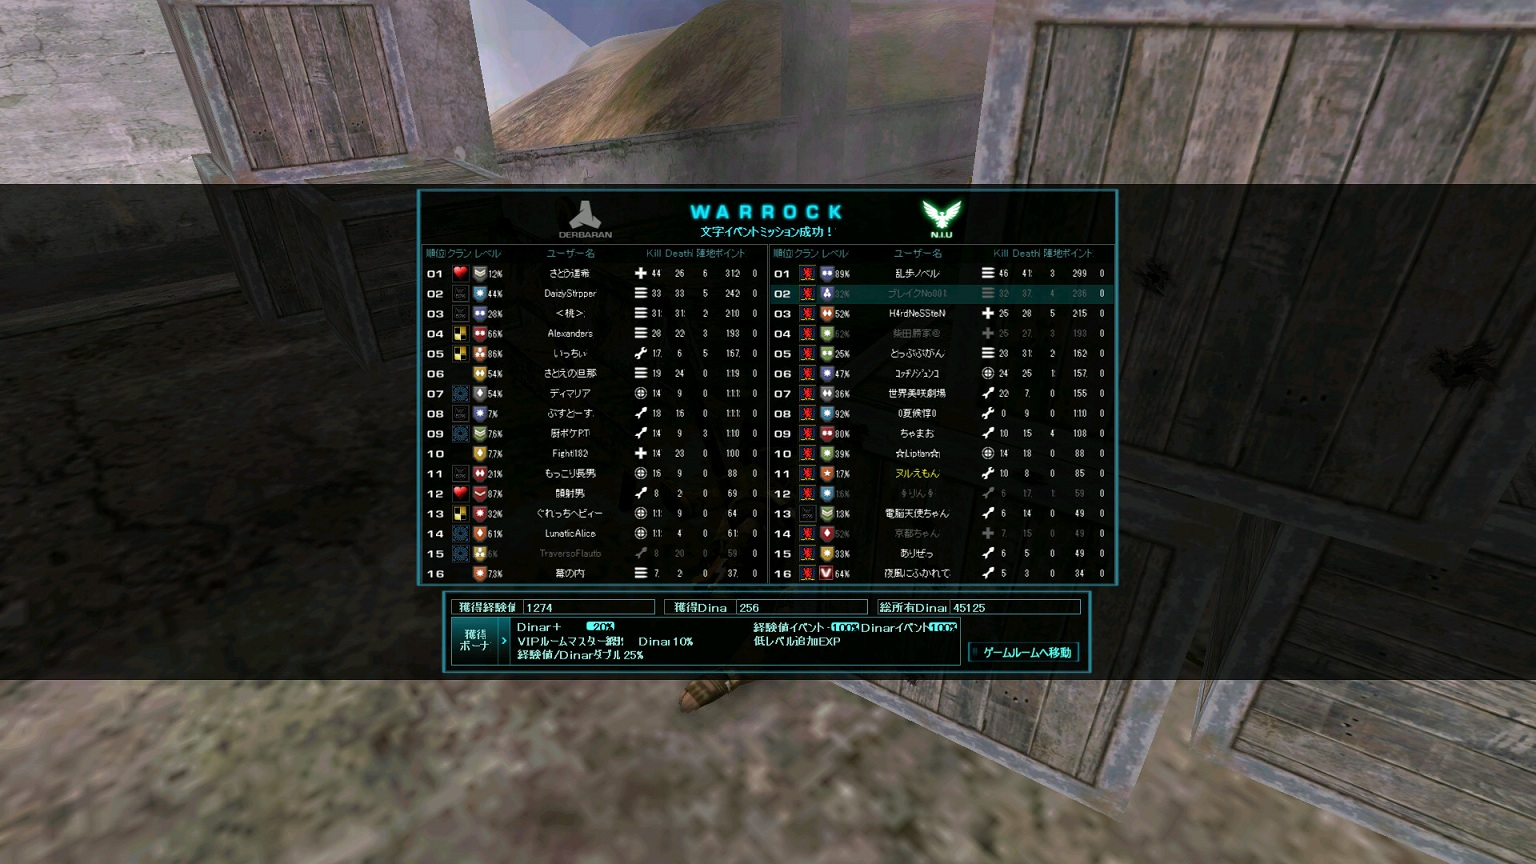 screenshot_306.jpg